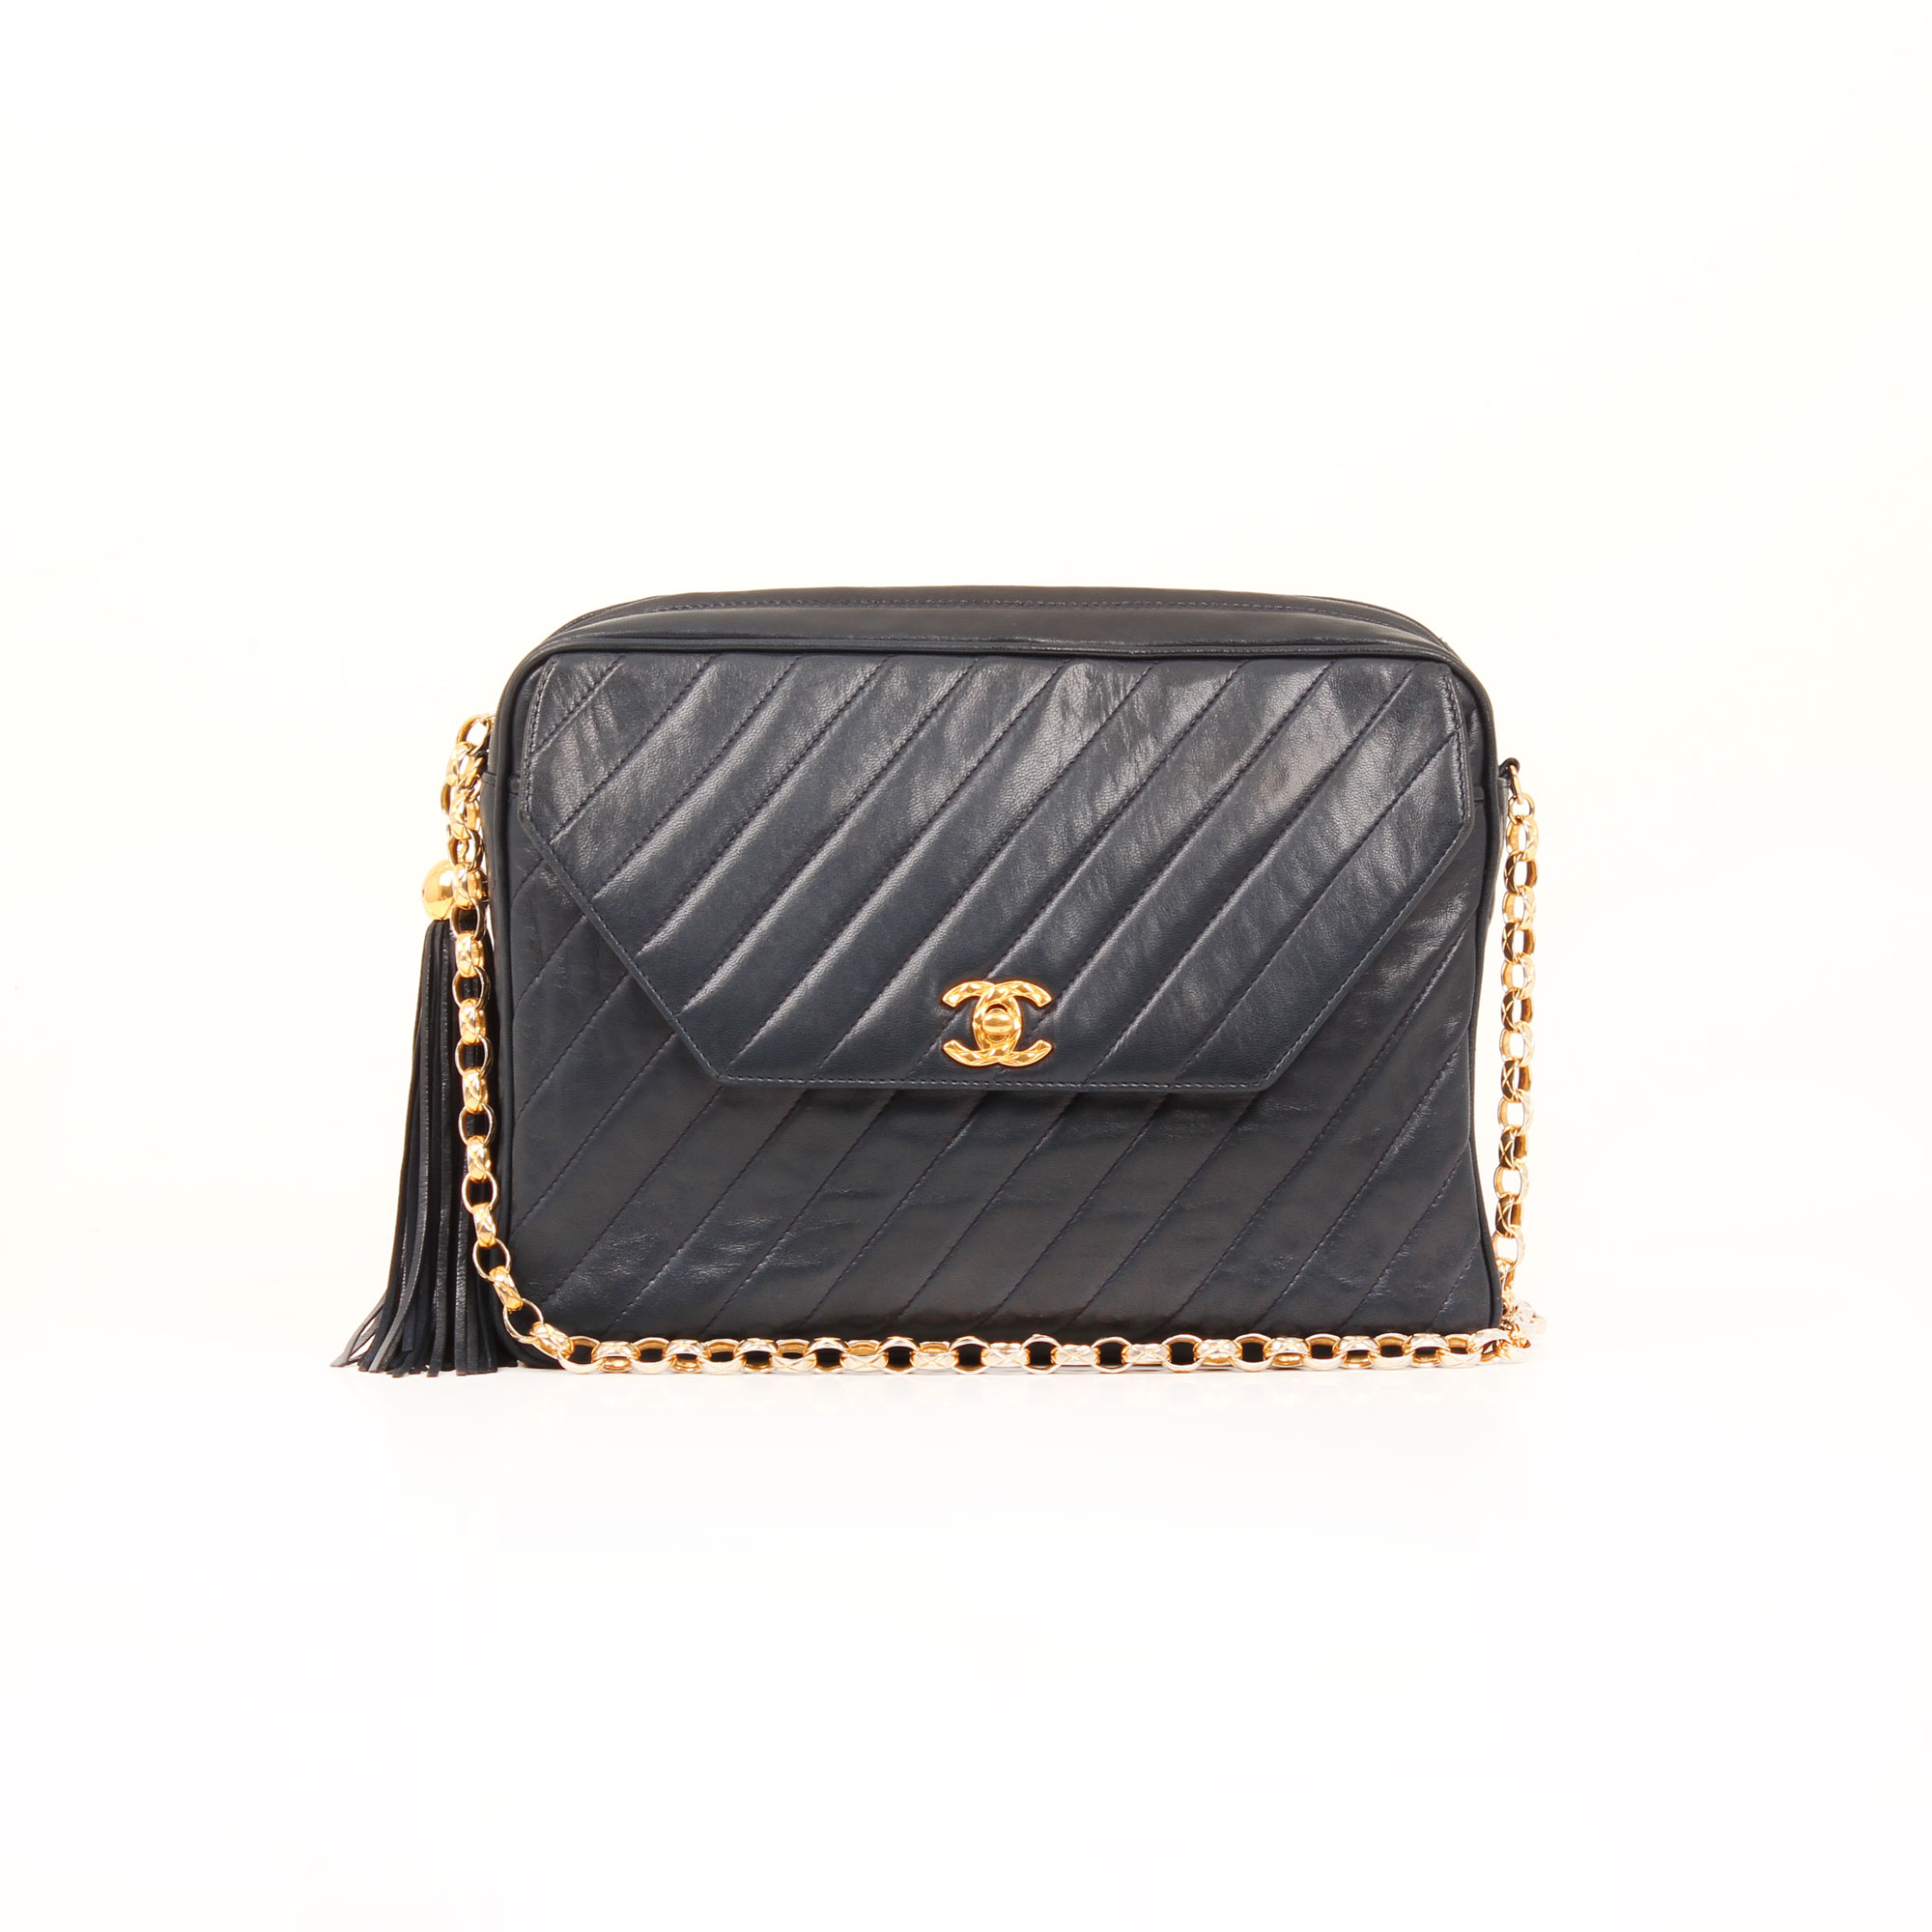 aa4b1a2e66ac61 Chanel Camera Vintage Vertical Quilted Navy Crossbody Bag I CBL Bags